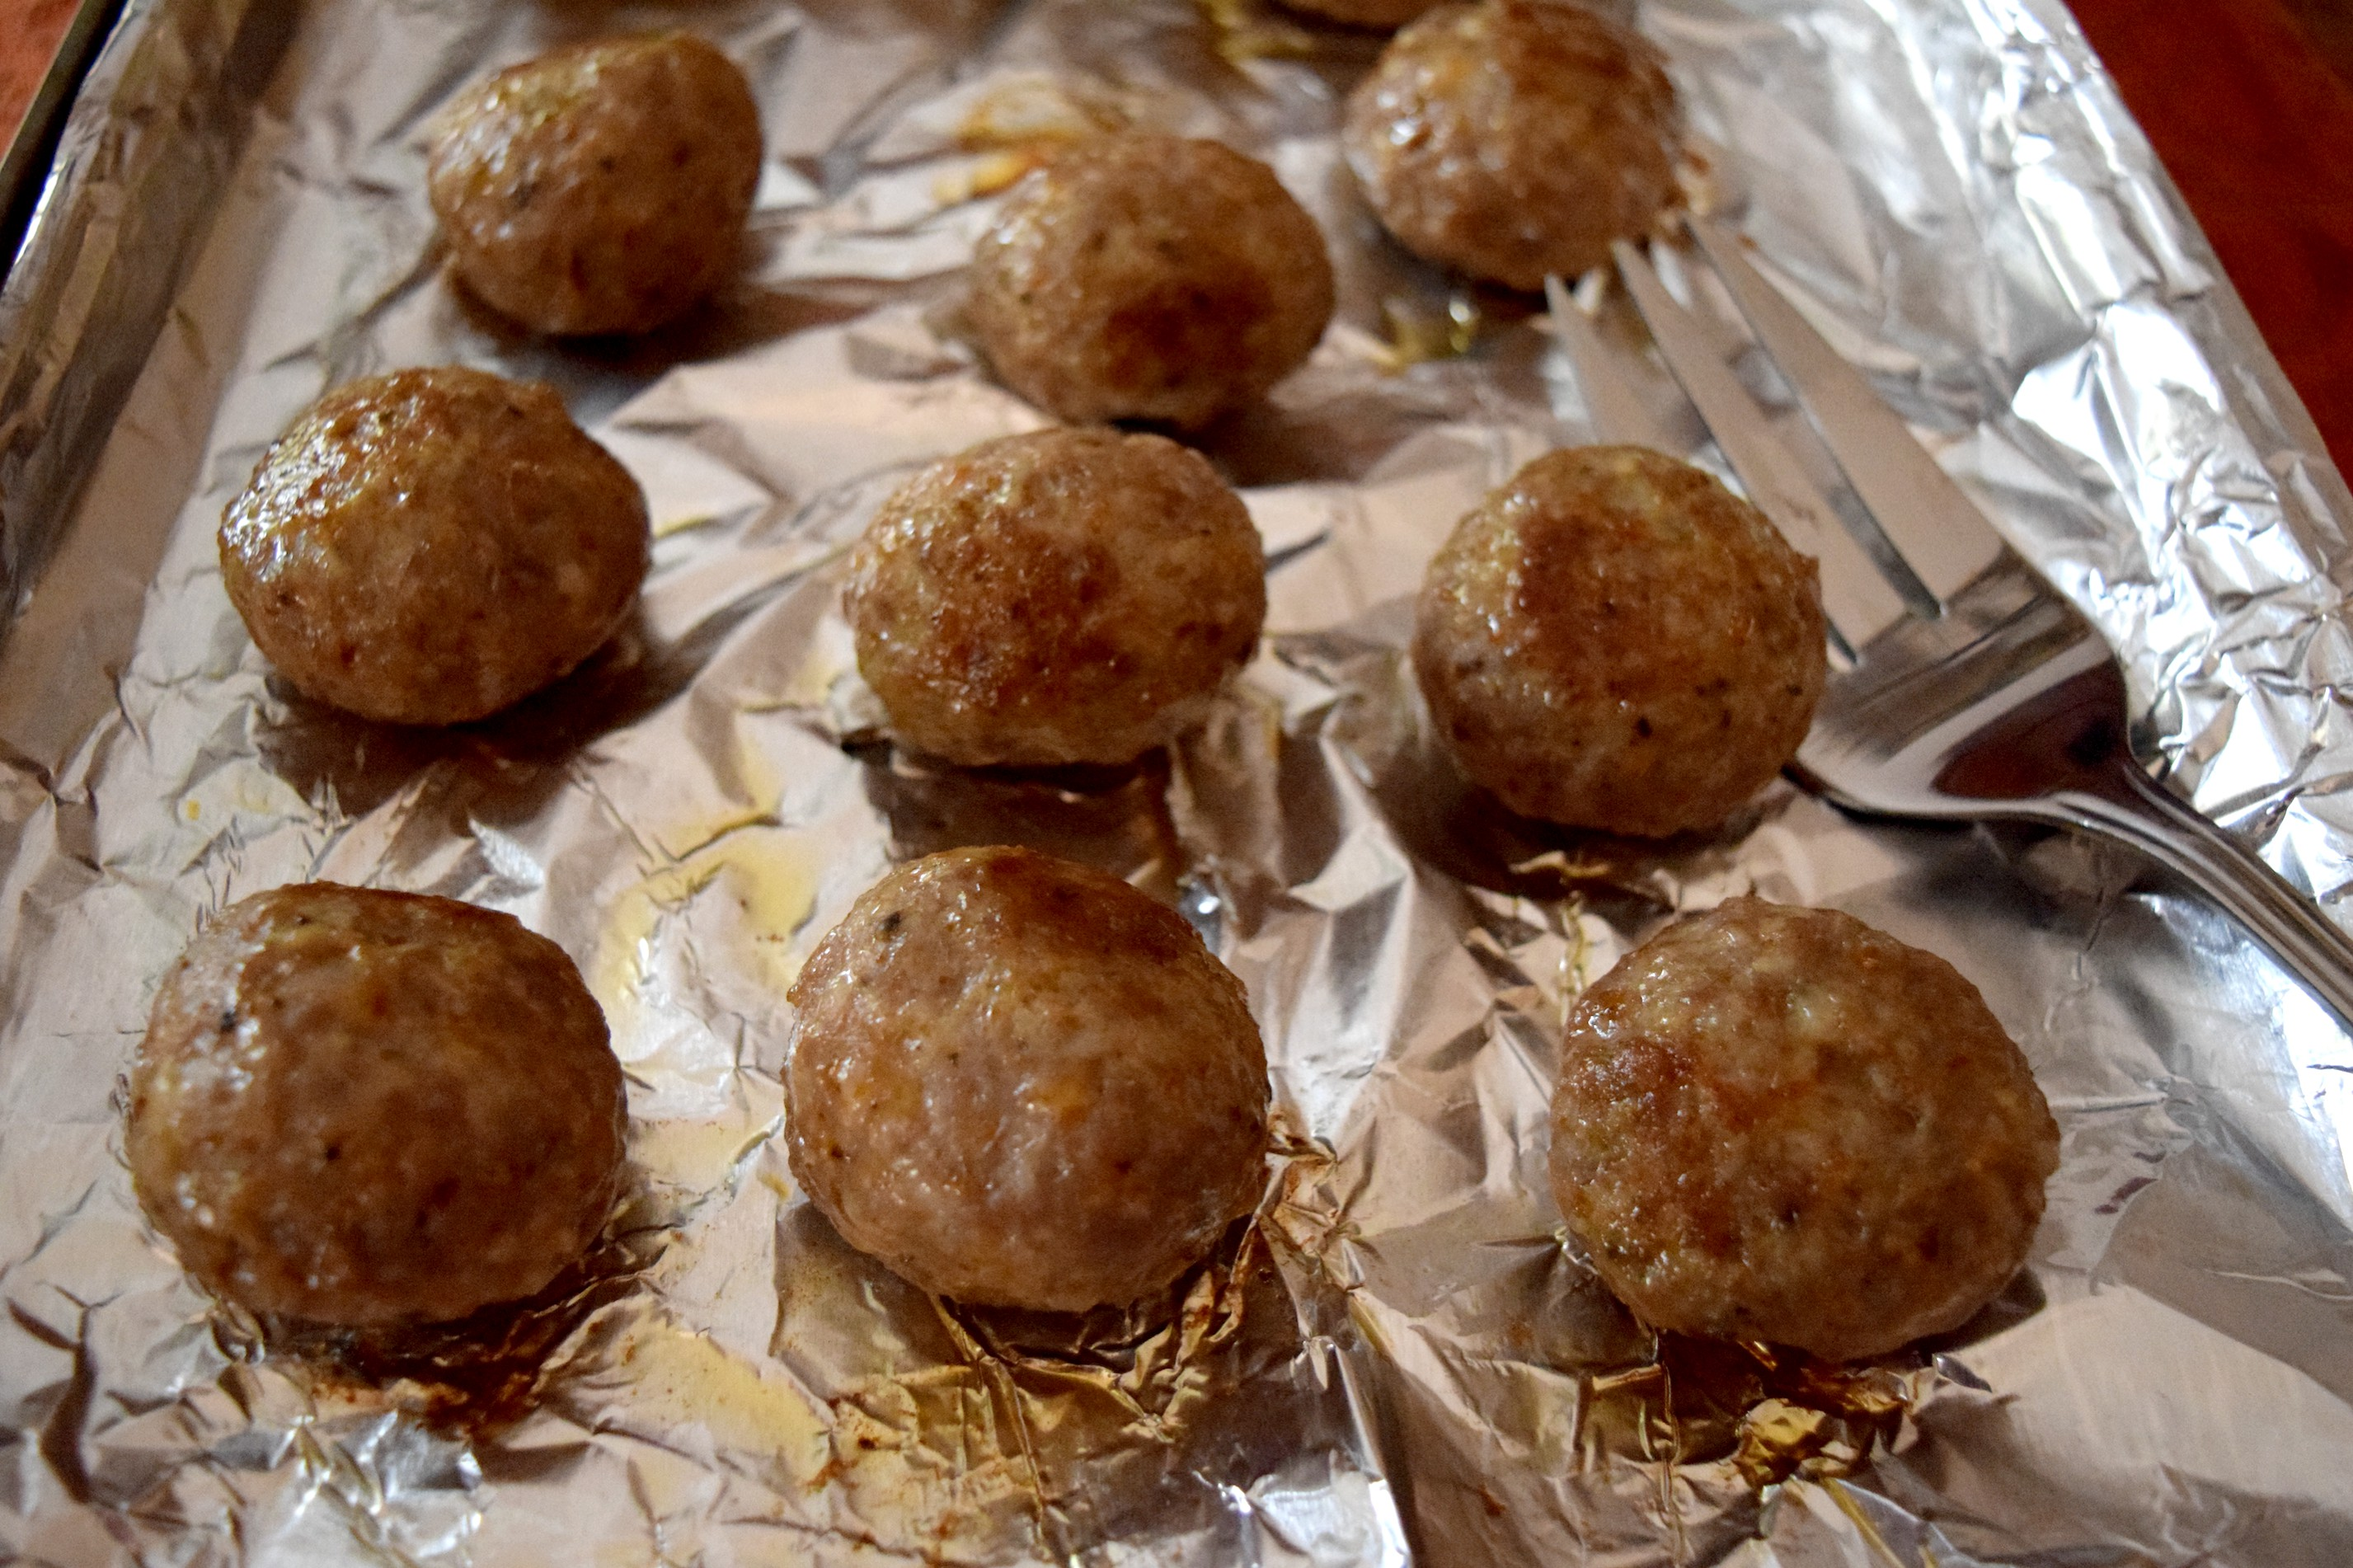 Carando Italian style meatballs bakes in the oven in under 20 minutes!